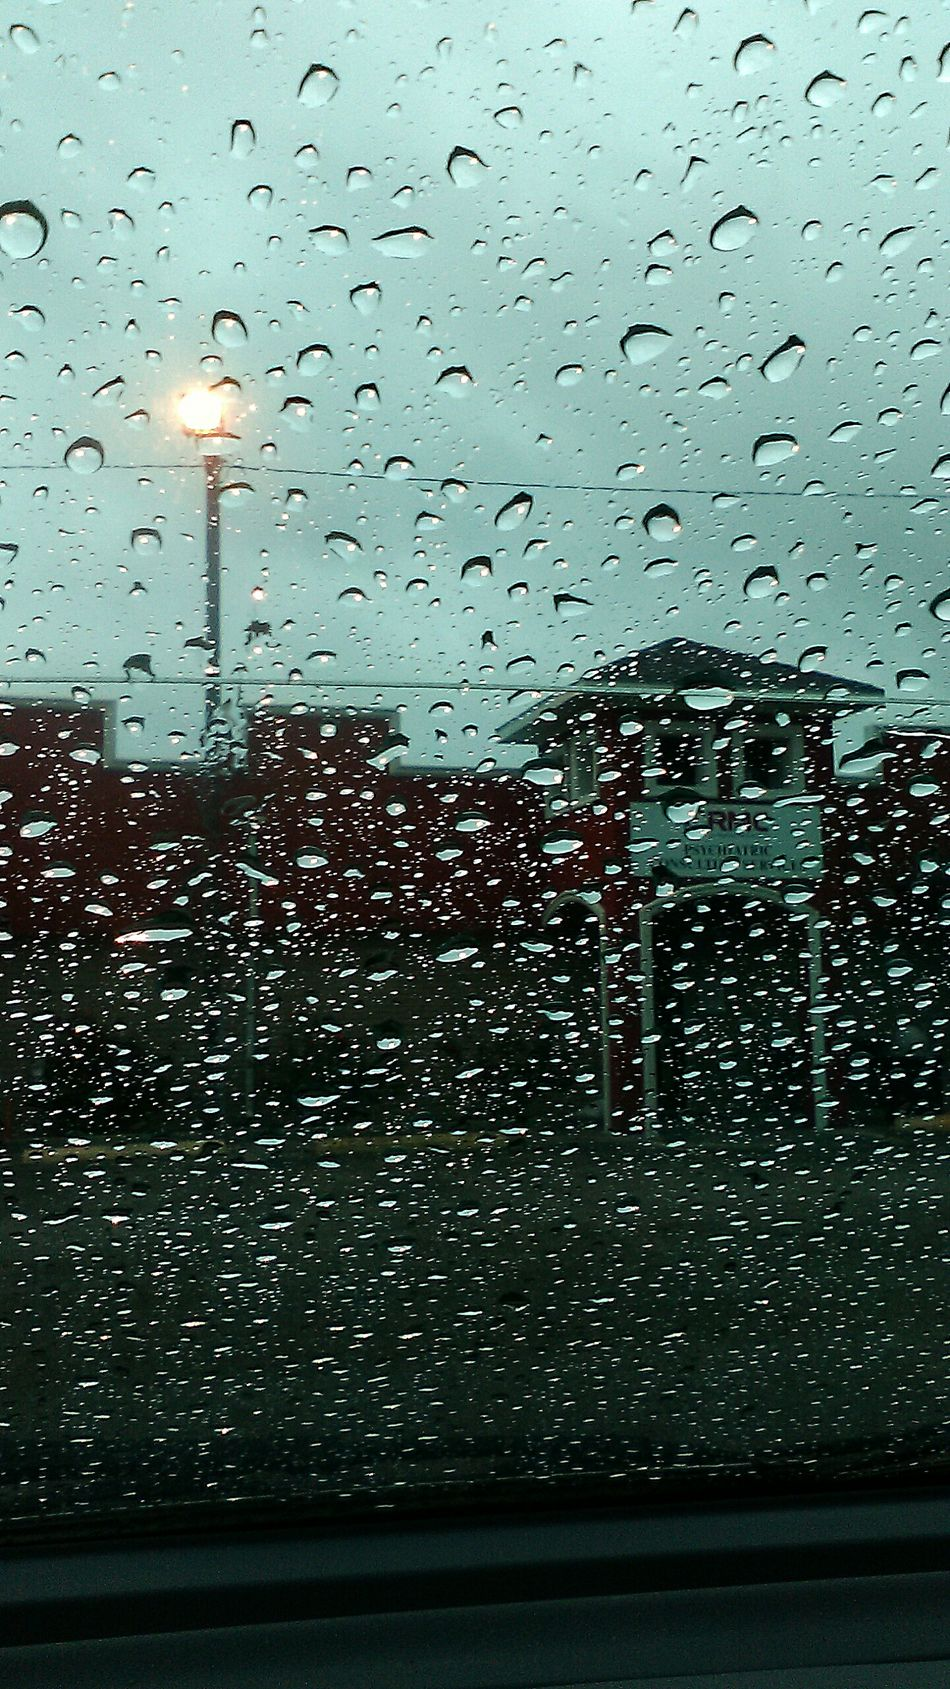 Outside Spring Showers Love The Rain Showcase : April Spring Showers Bring Spring Flowers Going Home Taking Photos Outside Photography Show Imperfections Photo Of The Day Raindrops Raindrops On Window Raindrops On My Window Cloudy Sky What I Saw... Going Home(: Heading Home! Finally Leaving Hell Love Outside Missed Back To Home Feeling Thankful Feeling Happy Have A Nice Day! Love EyeEm